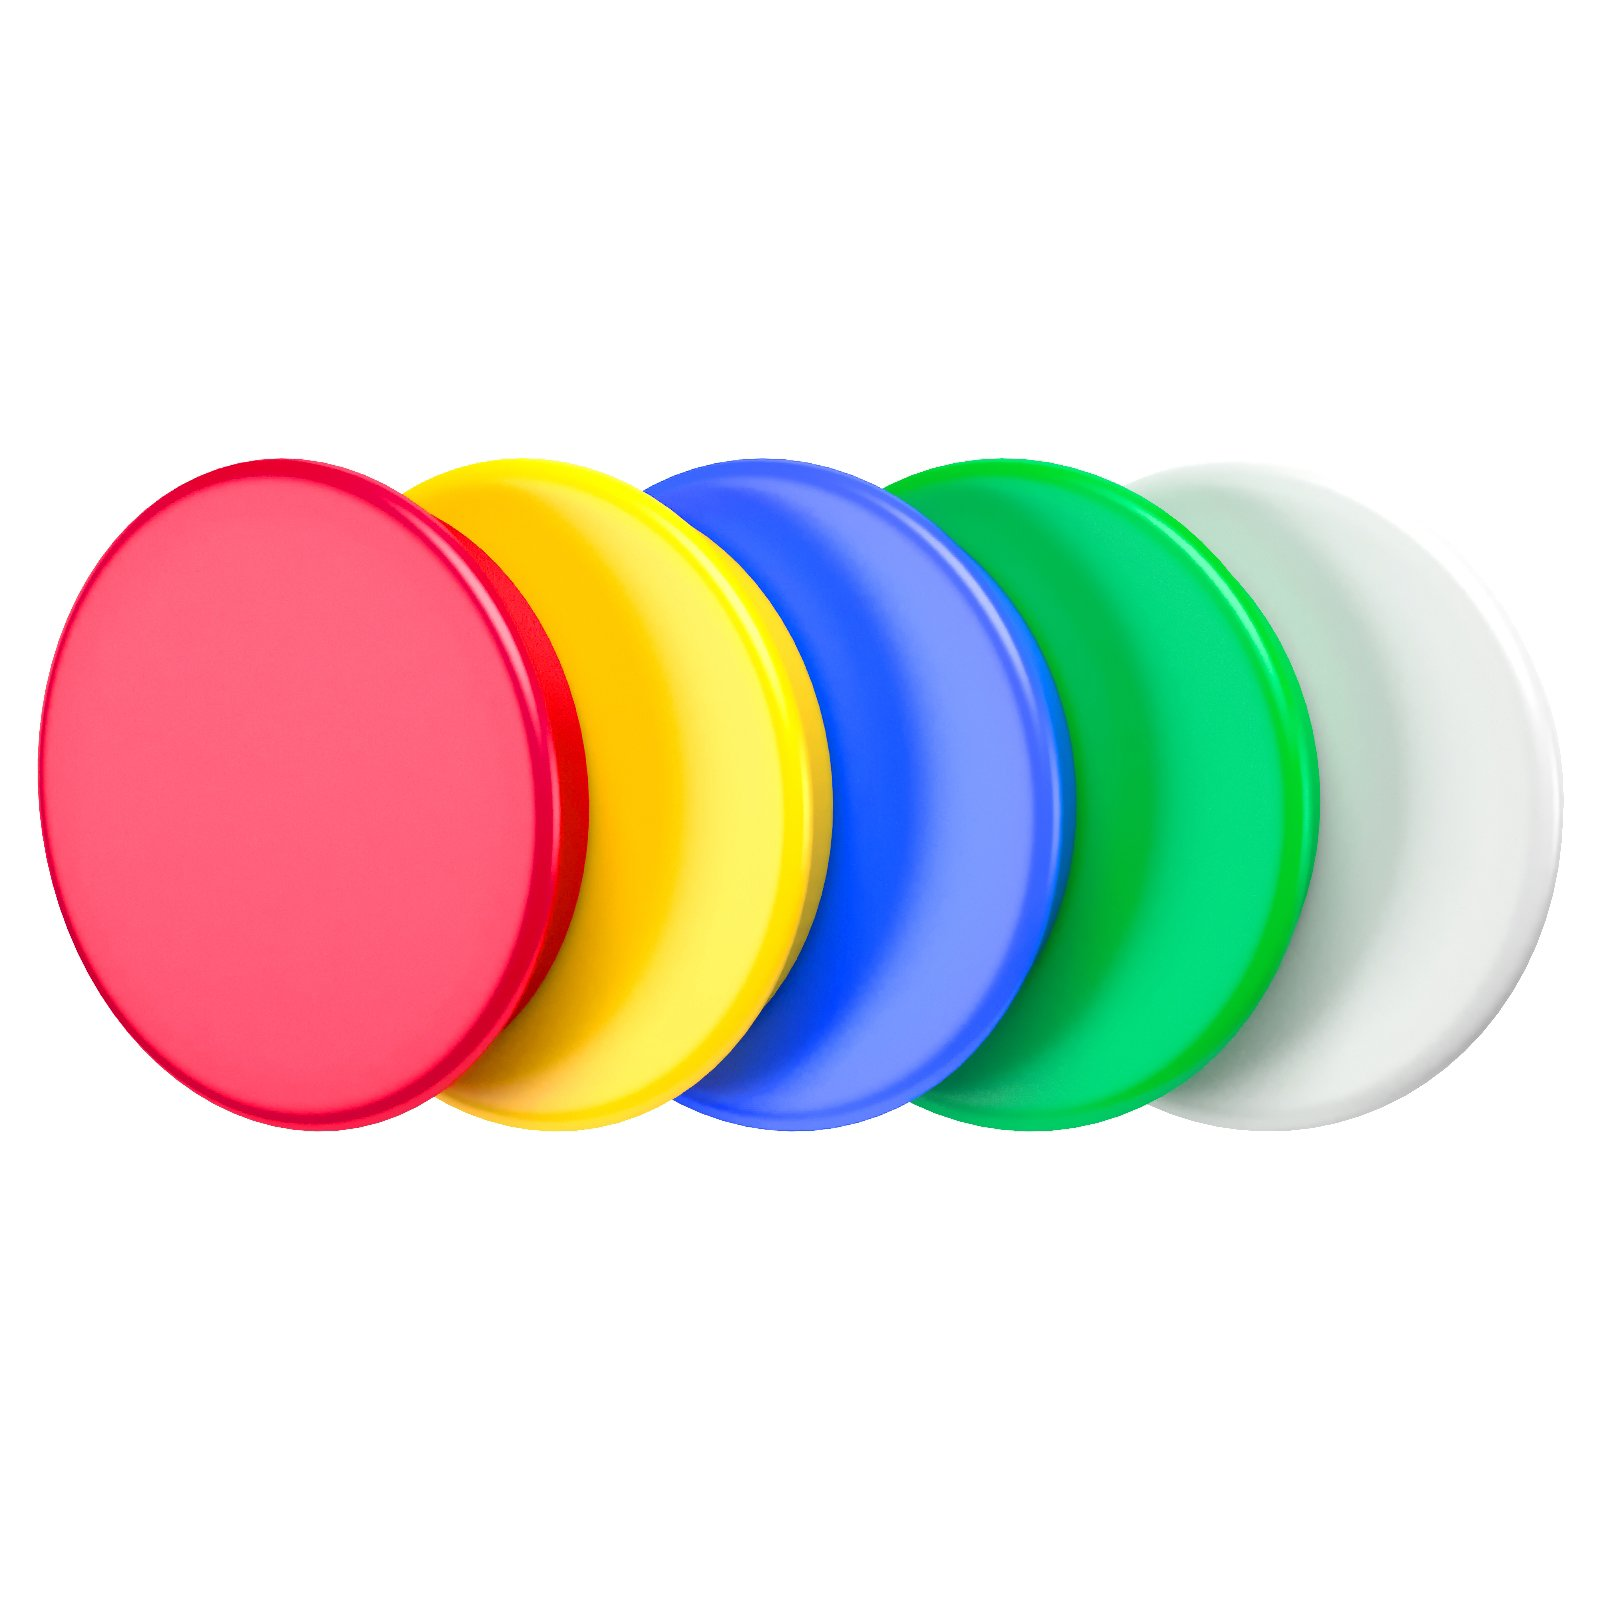 36-piece Veemoh Heavy duty Office magnets pack - Office, Kitchen, Refrigerator, Whiteboard magnet set by Veemoh (Image #2)